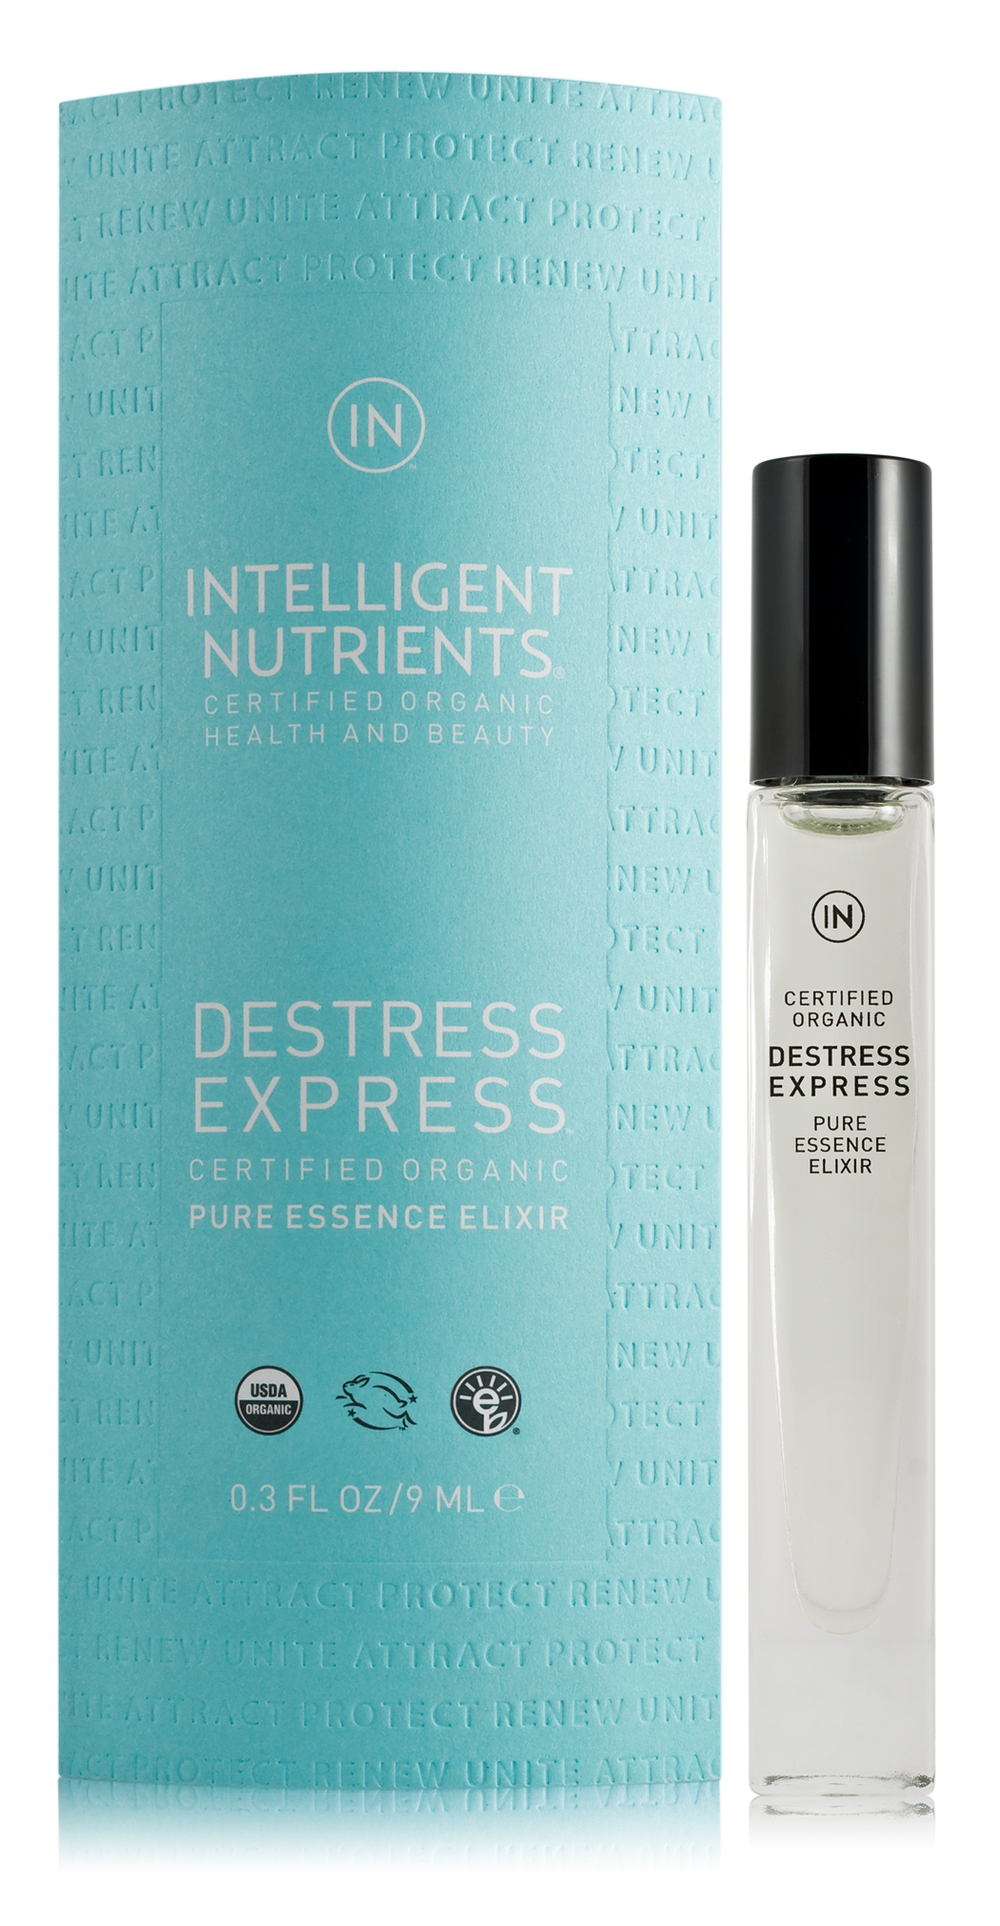 Destress Express™ Pure Essence Elixir - Acupressure ball (DKK335/9ml)